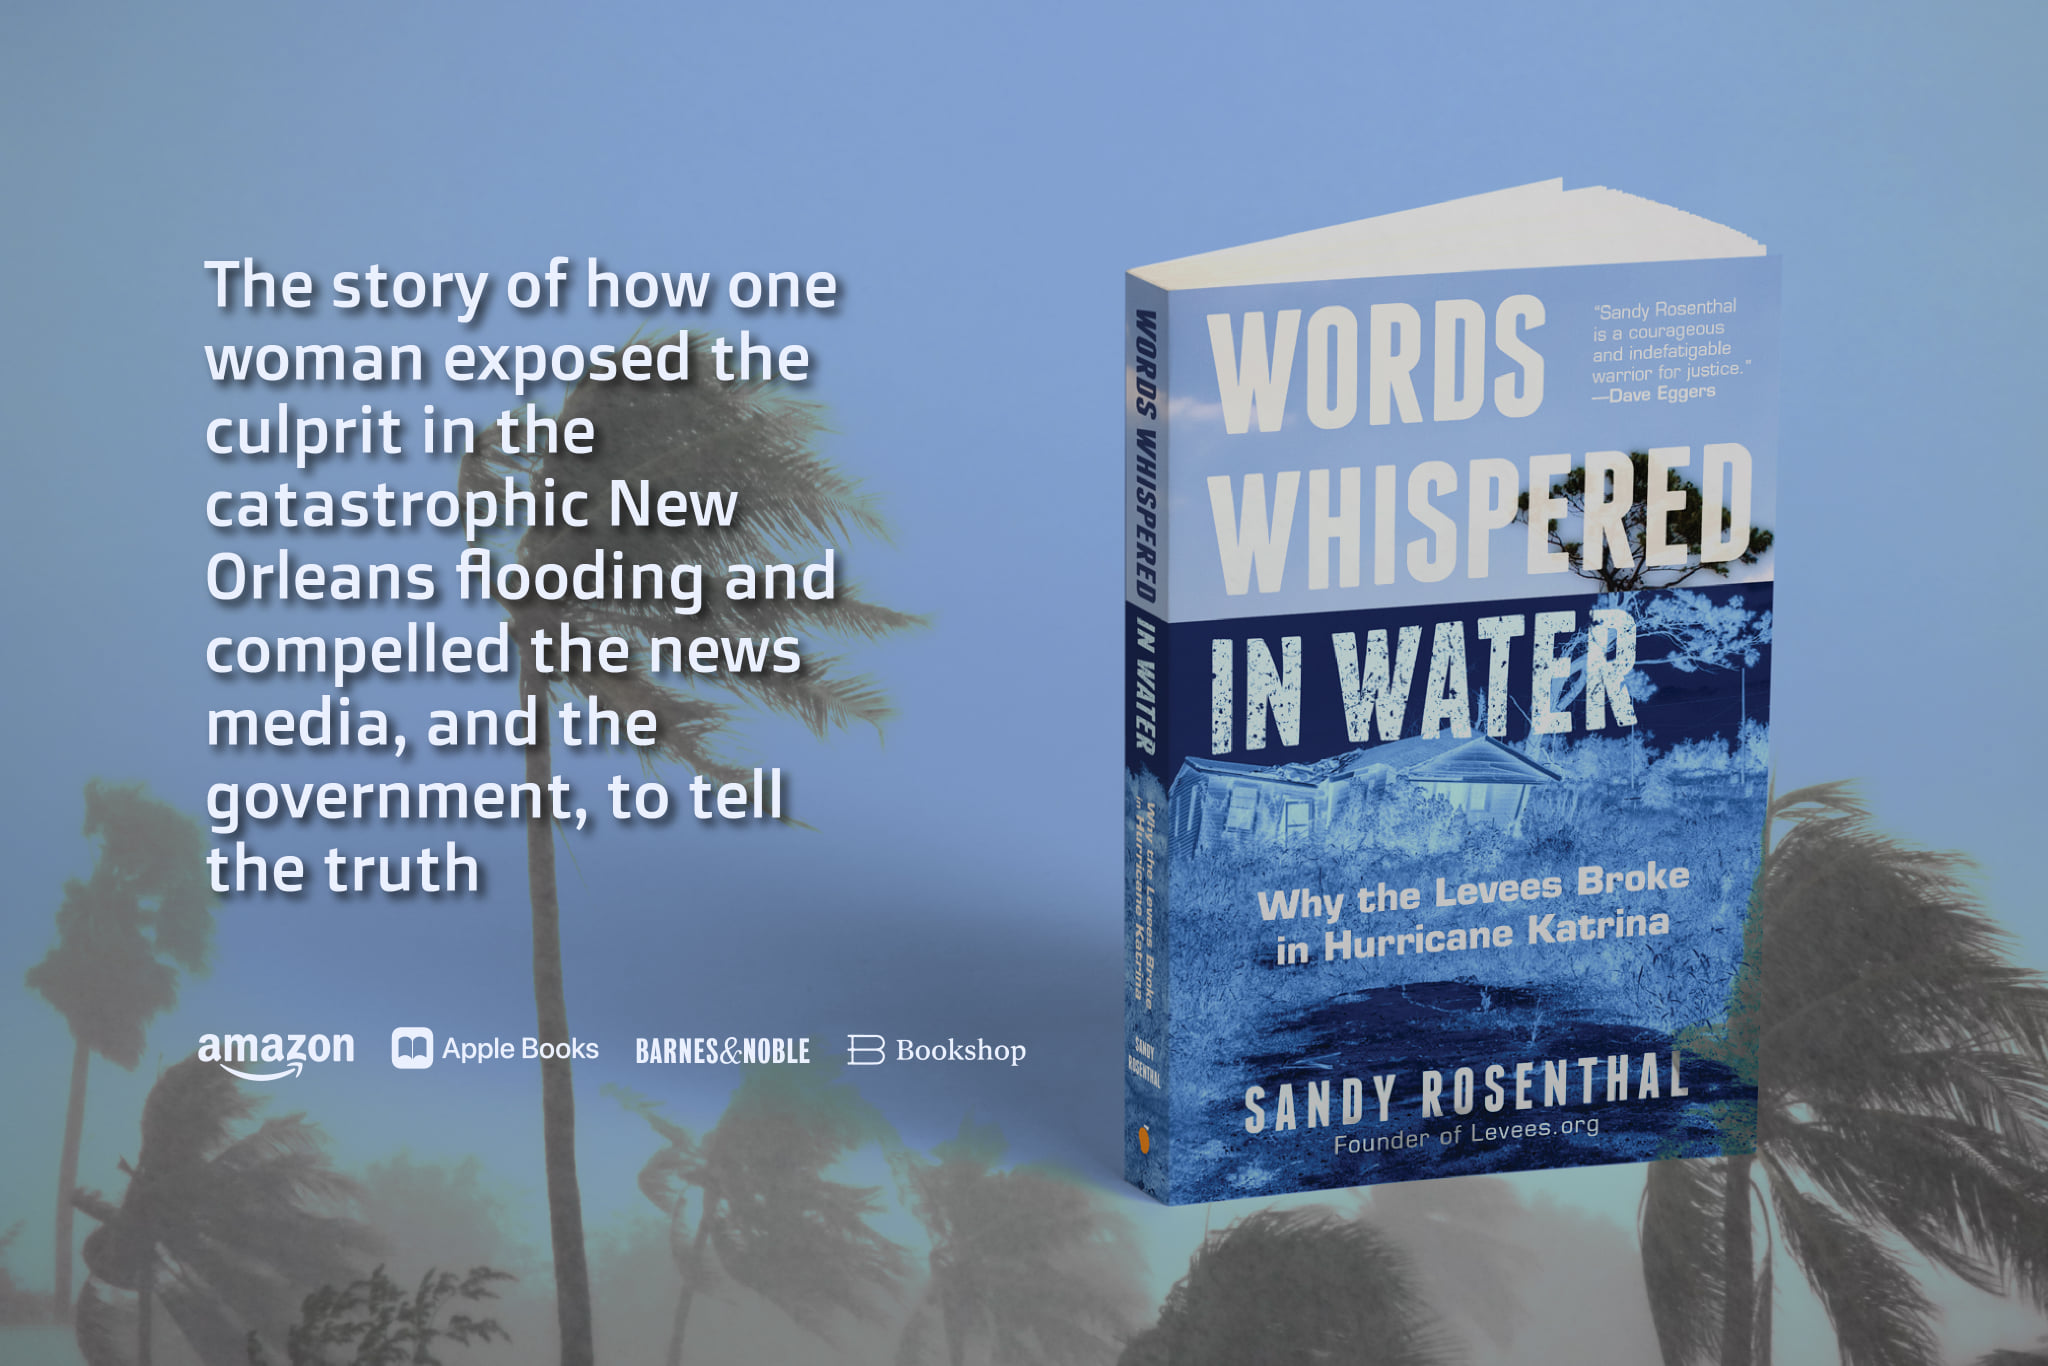 Sandy Rosenthal book Words Whispered in Water Why the Levees Broke in Hurricane Katrina is the story of how one woman exposed the culprit in the catastrophic New Orleans flooding and compelled the news media, and the government, to tell the truth.